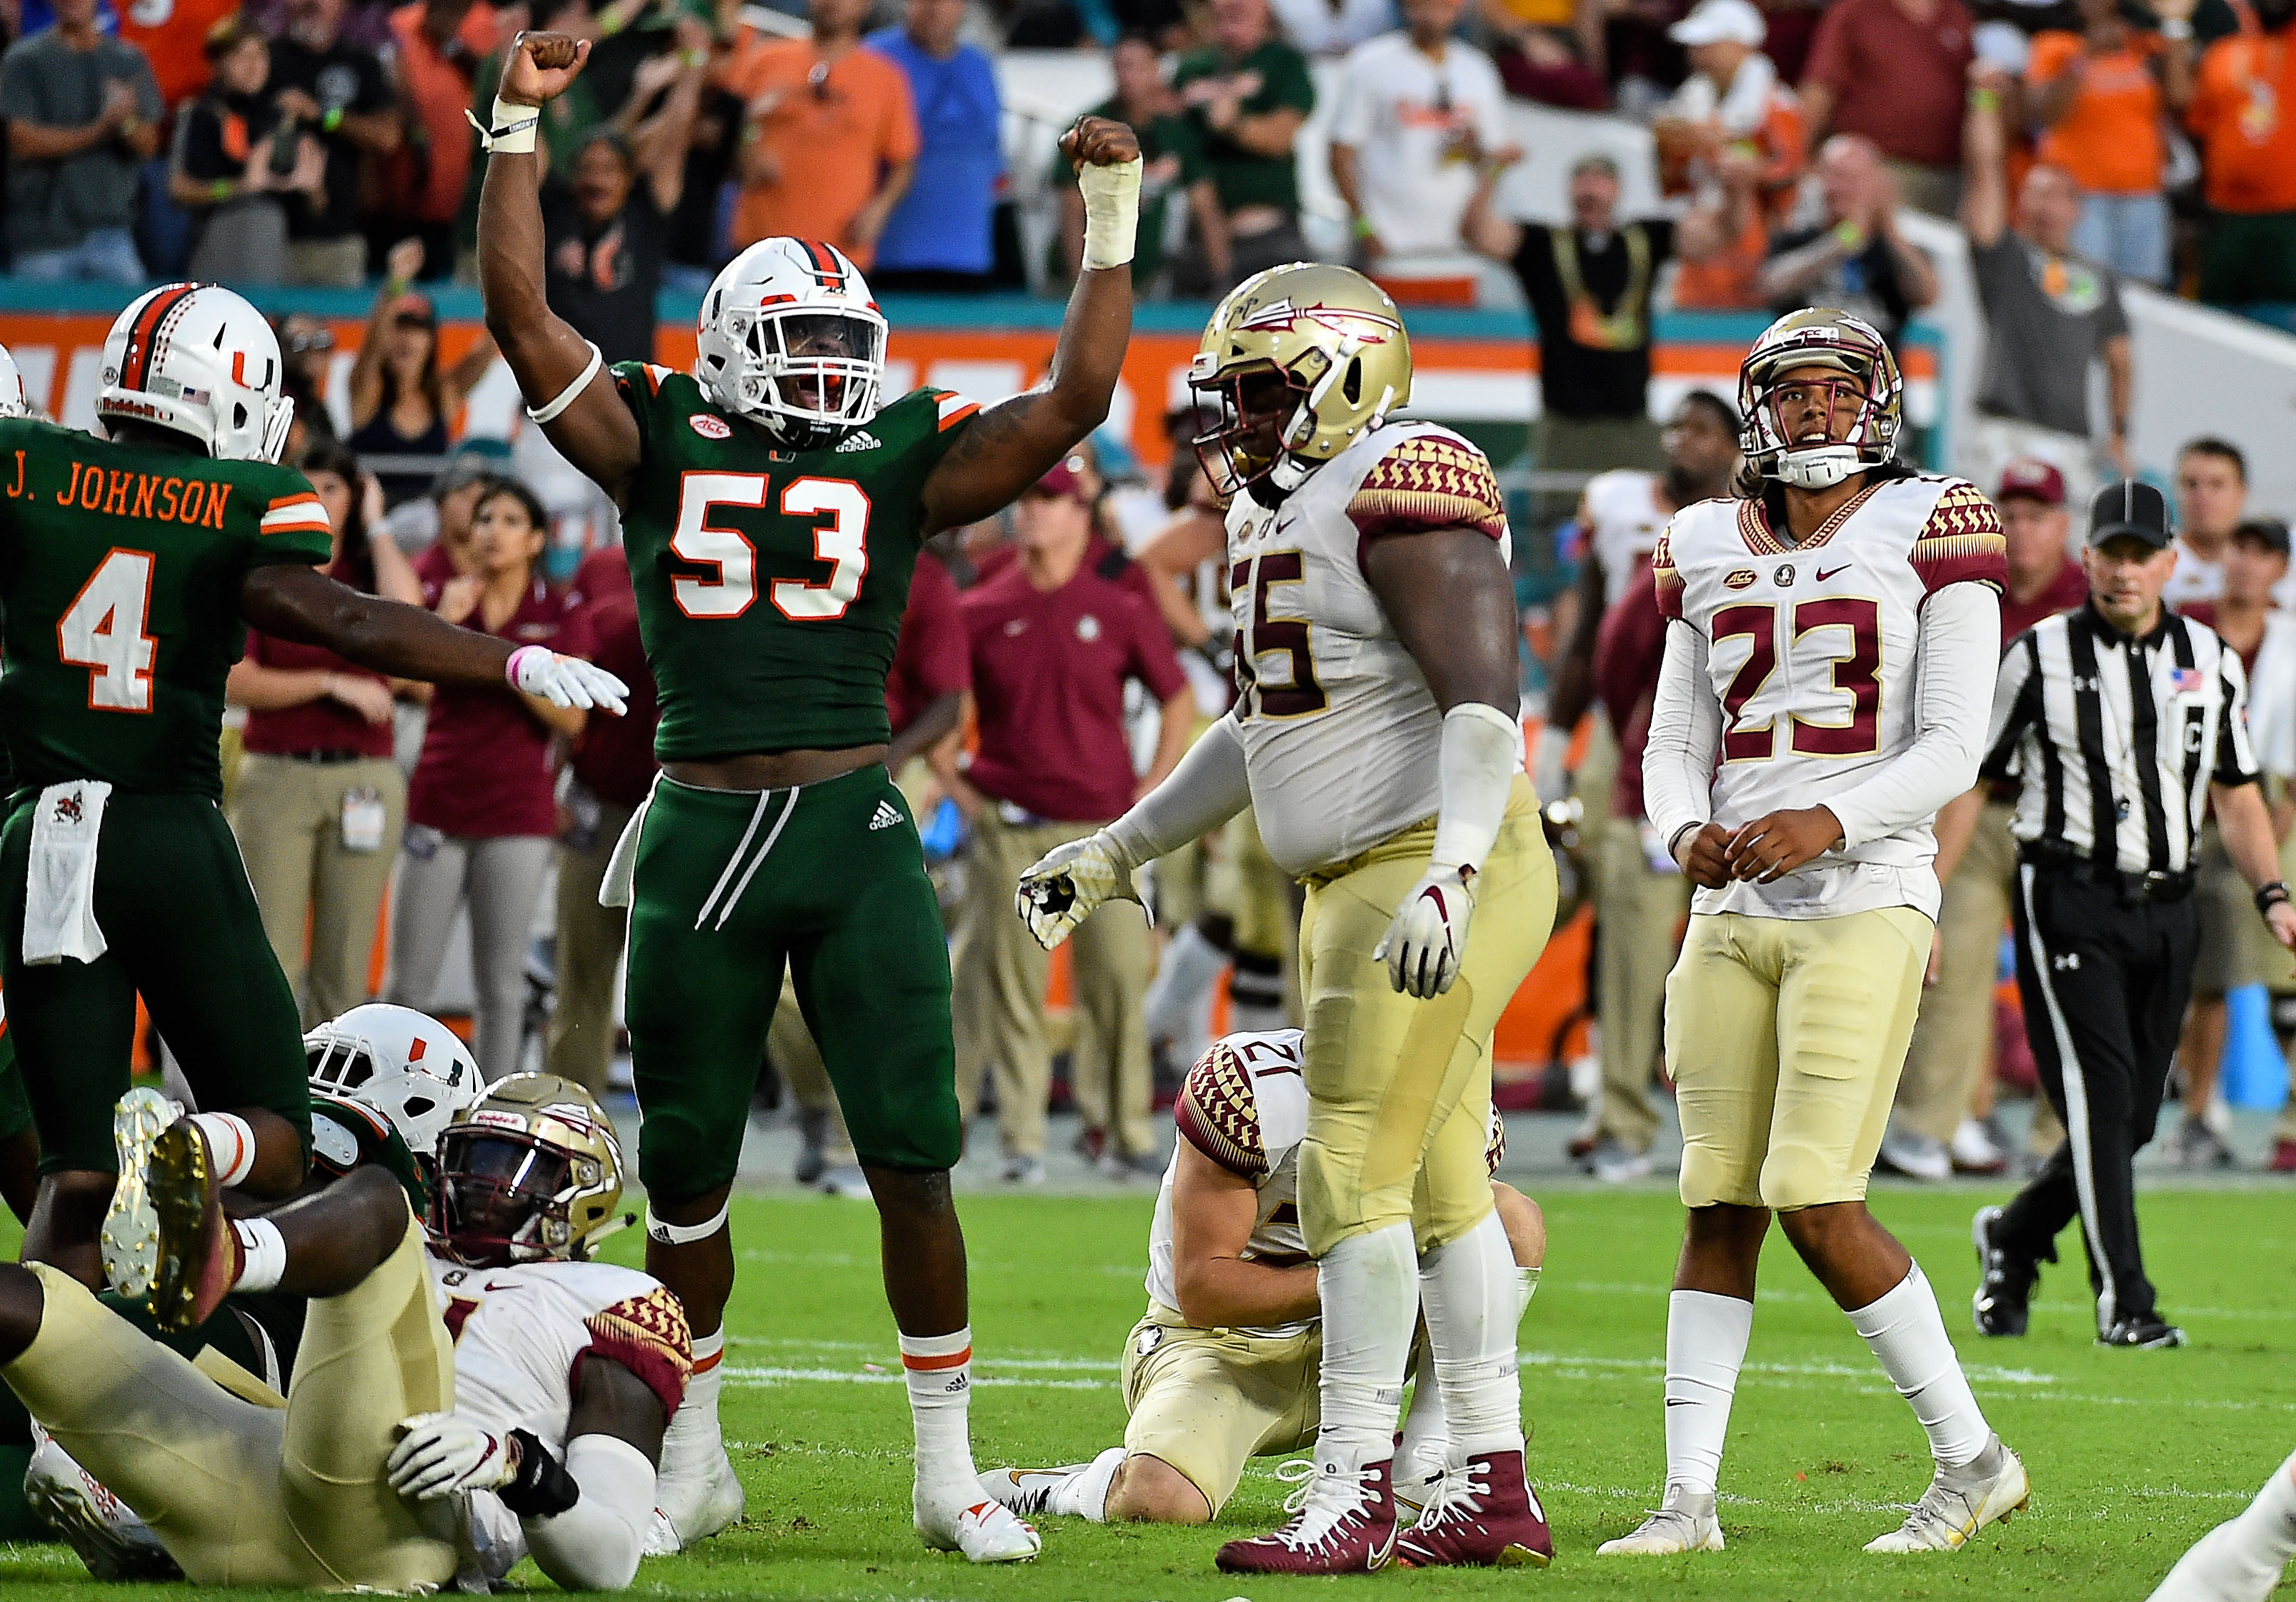 After Miami Scored 21 Unanswered Points To Beat Fsu Hurricanes Took